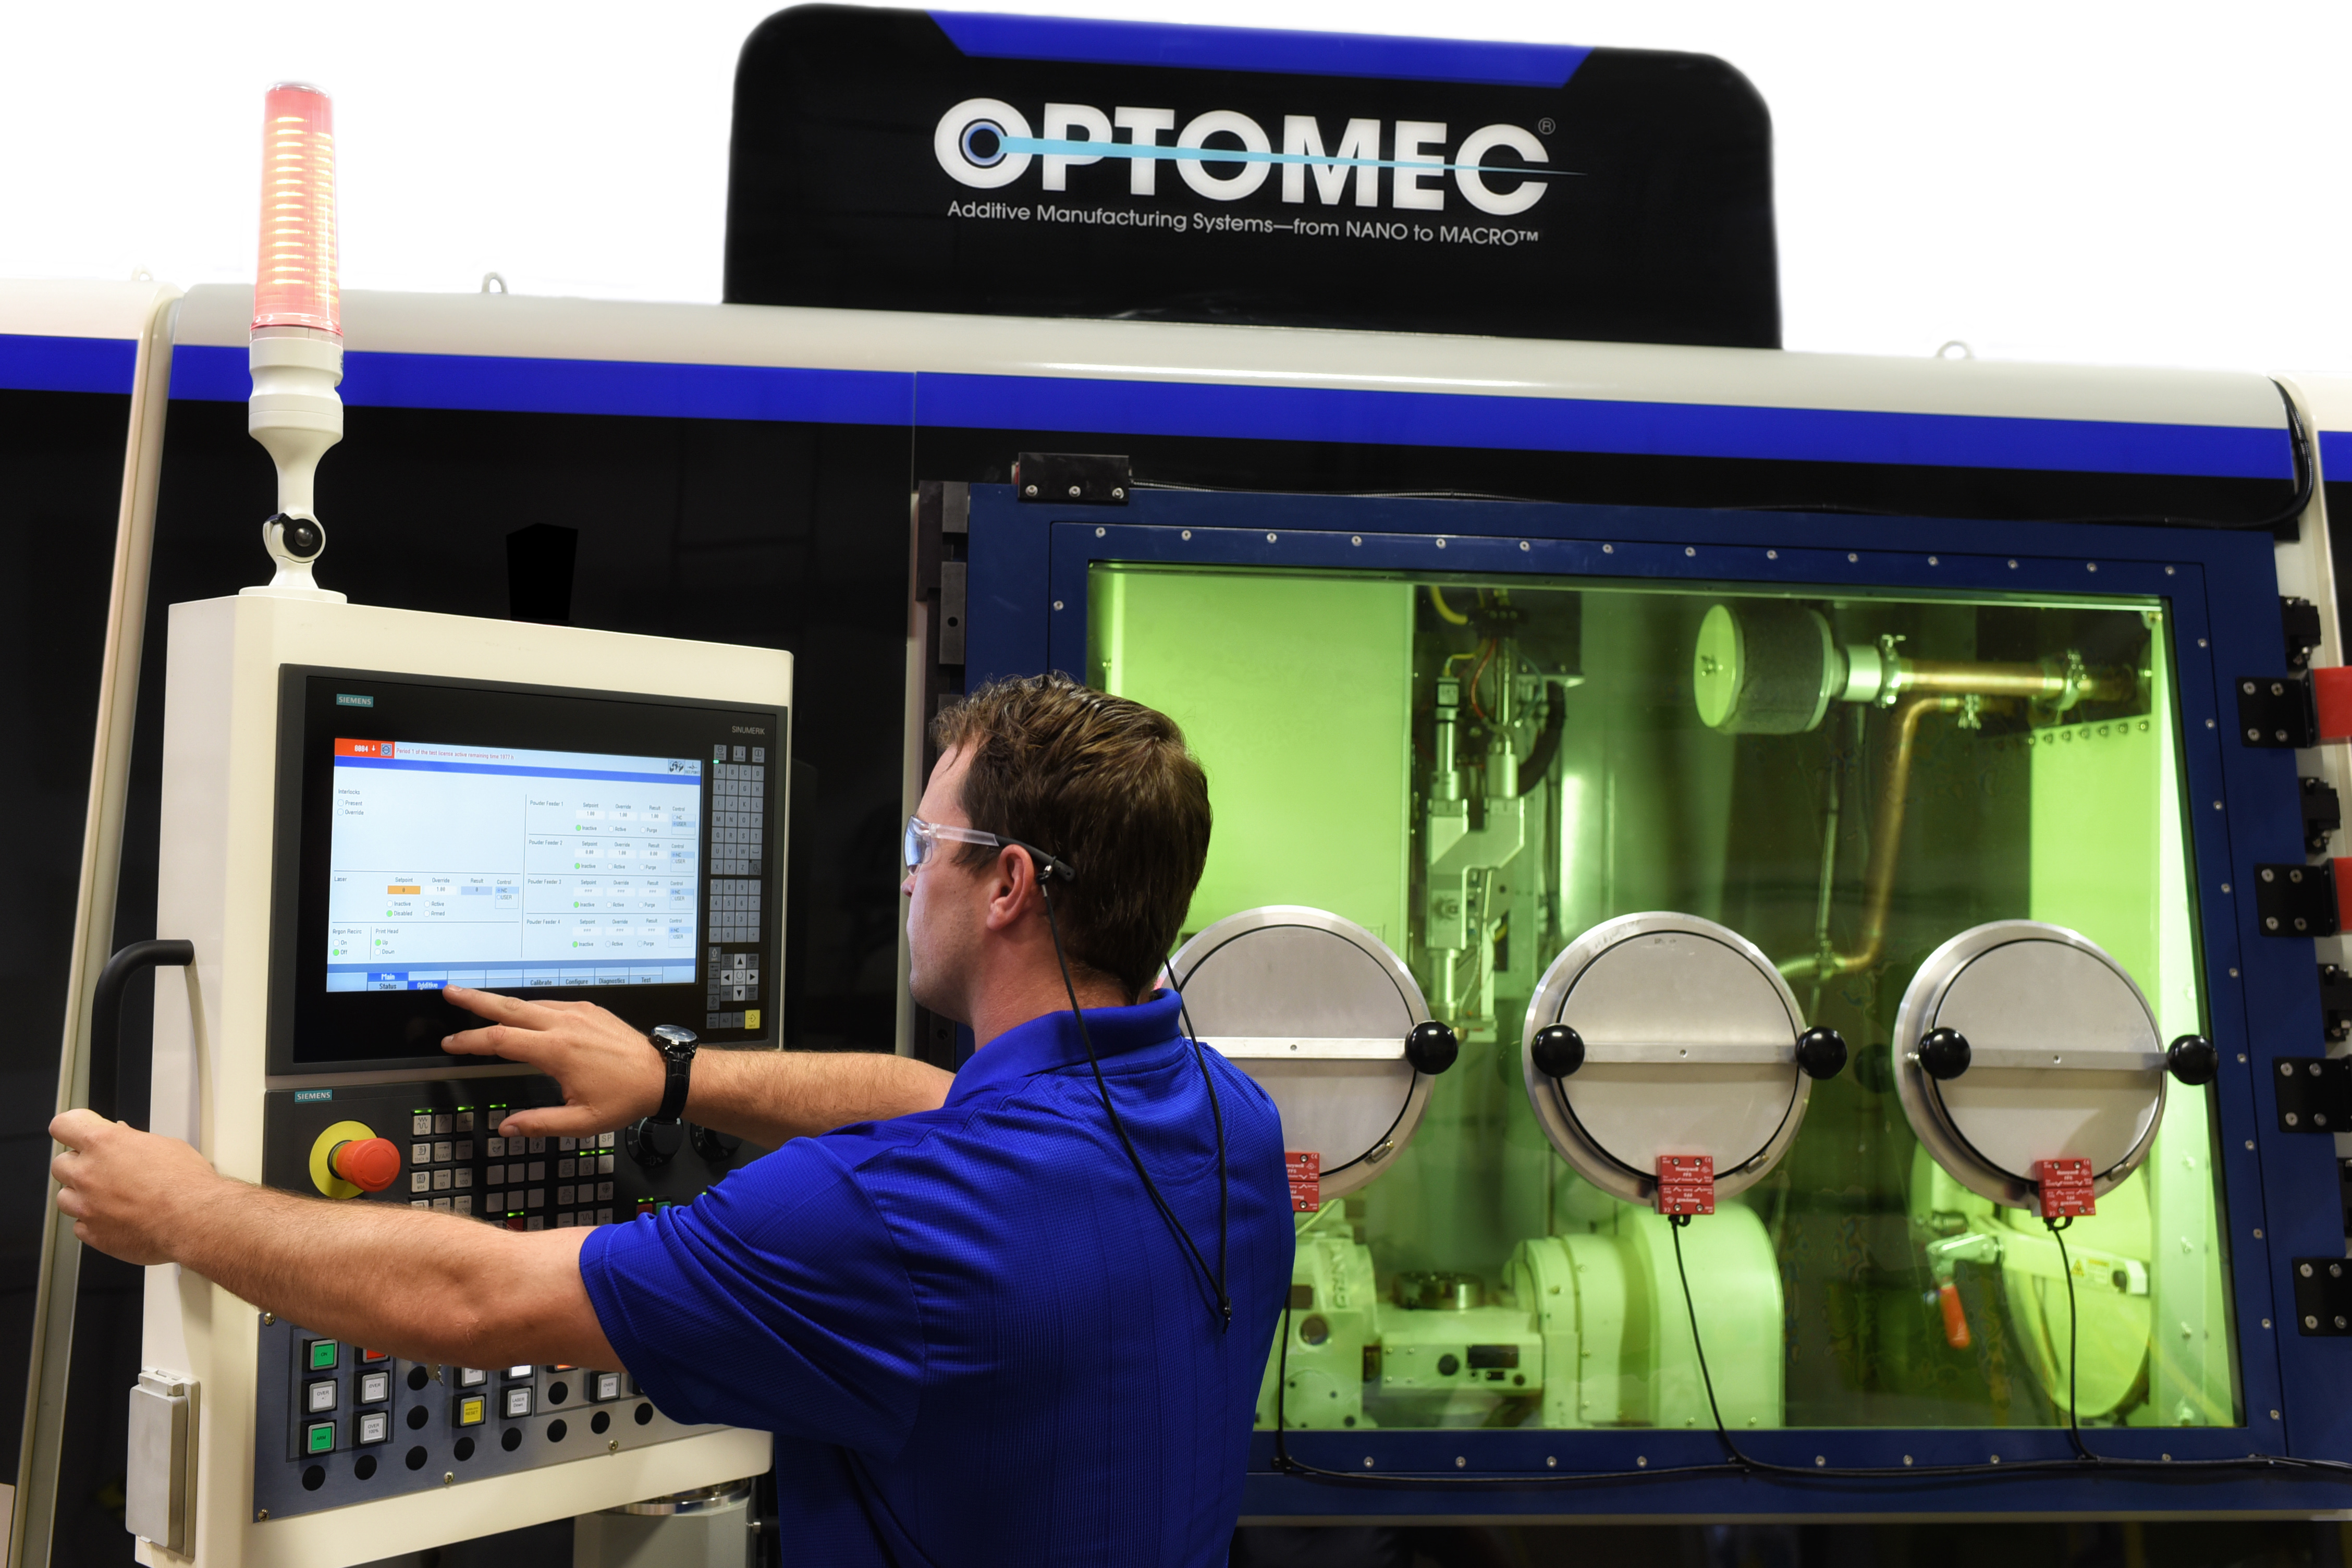 The Optomec LENS 860 closed atmosphere hybrid additive manufacturing system. Photo via Optomec